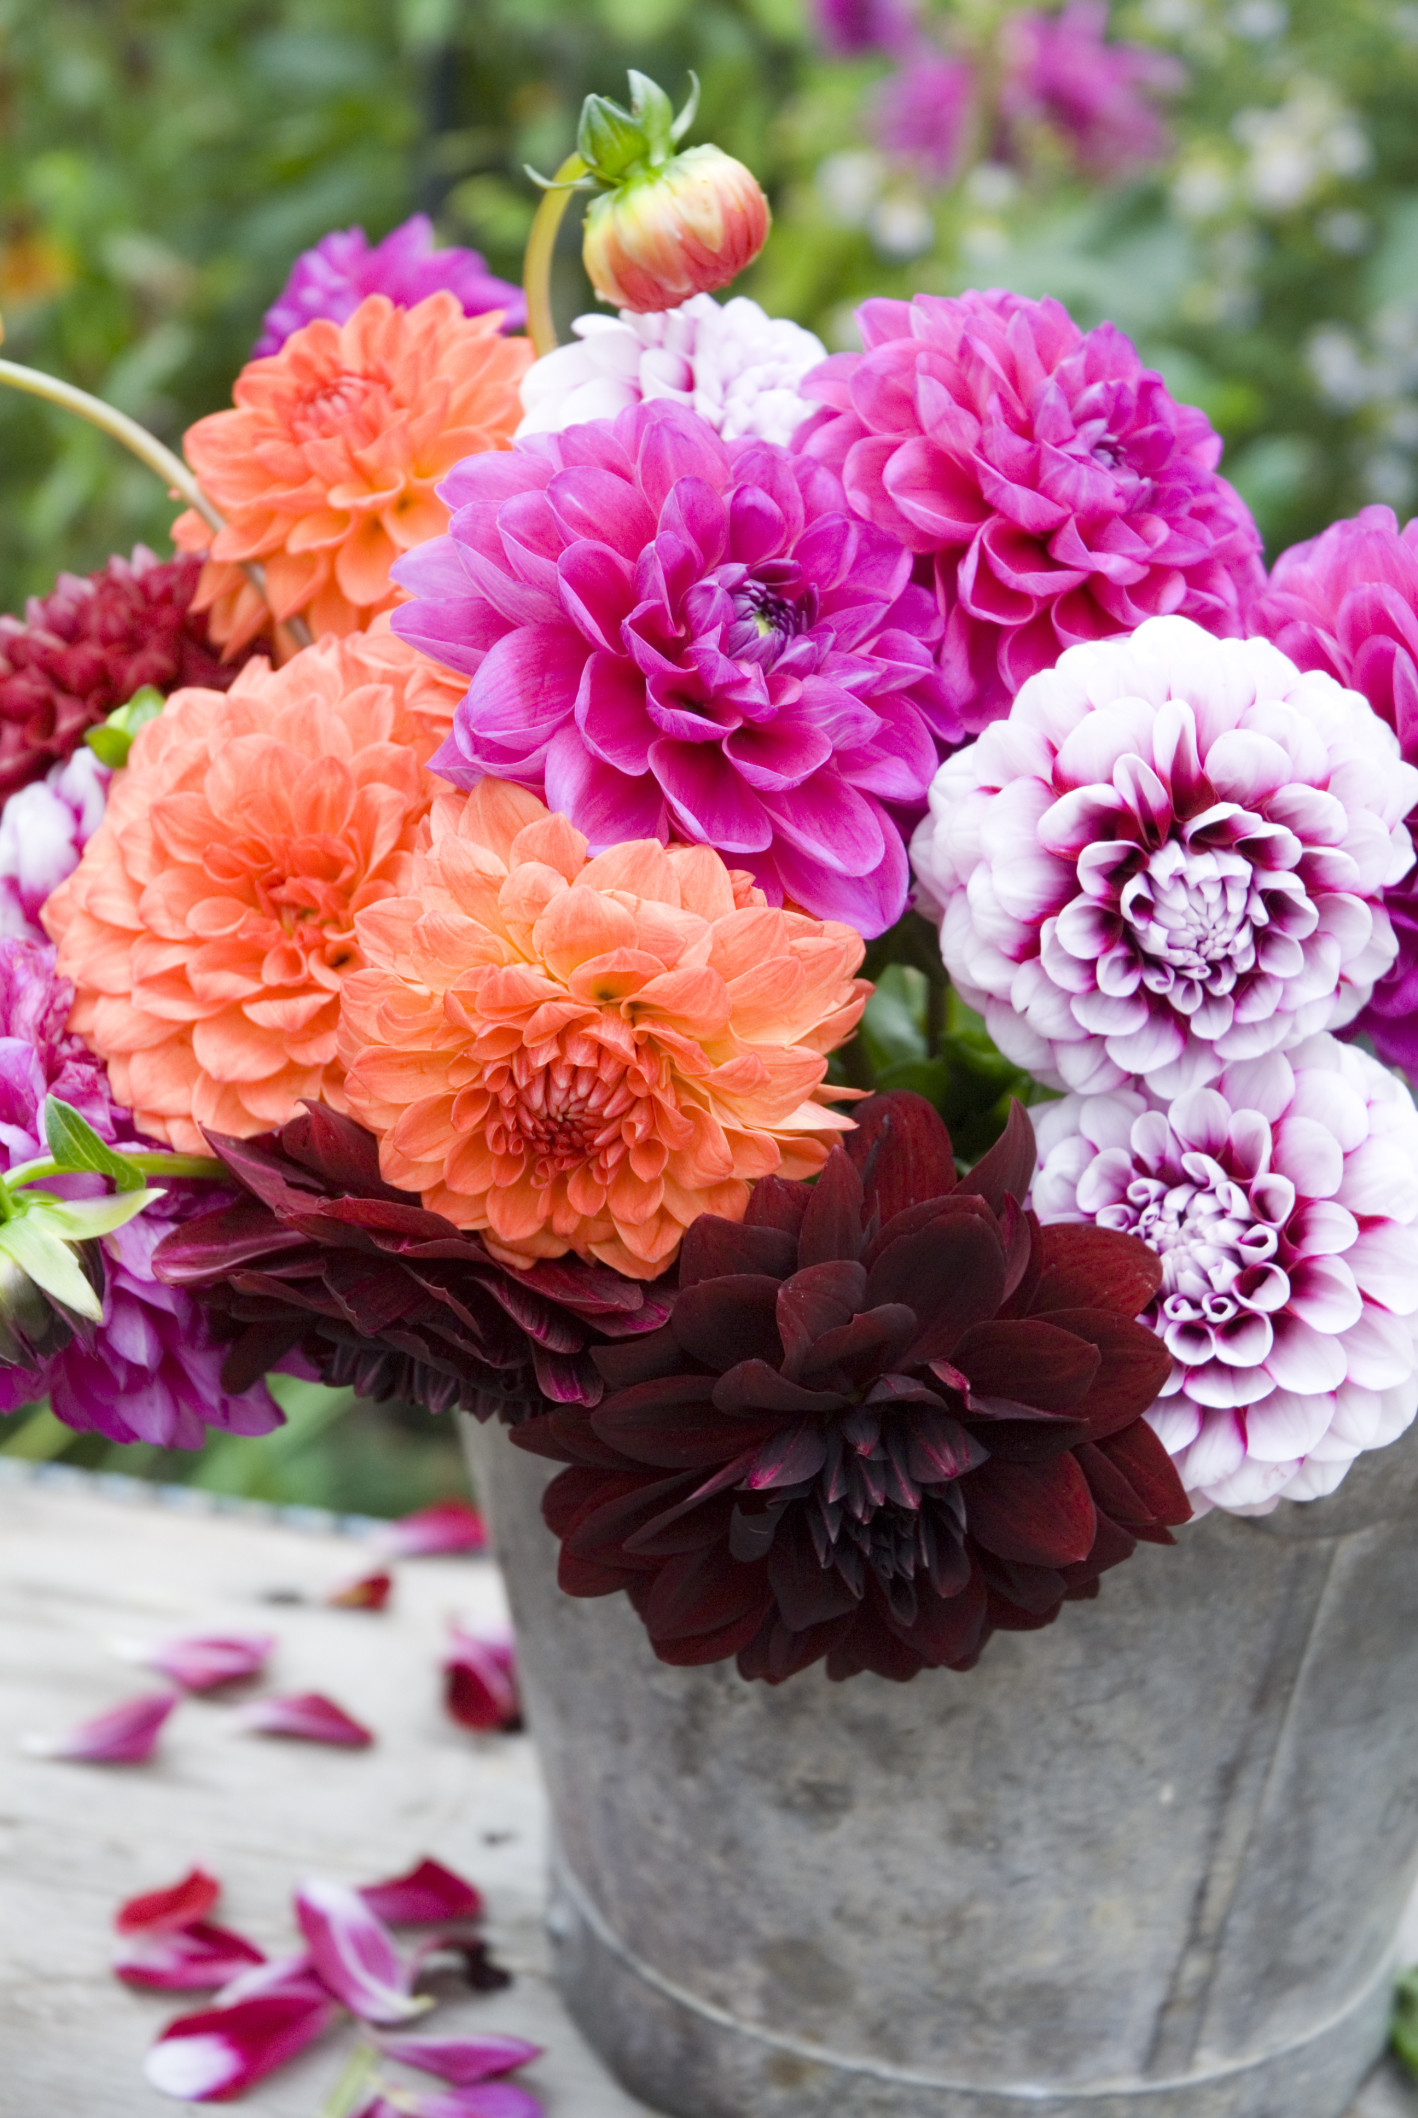 28 50 cool fall flowers d 233 cor ideas for your home digsdigs 50 cool fall flowers d 233 cor ideas for your home digsdigs beautiful fall flowers wallpaper izmirmasajfo